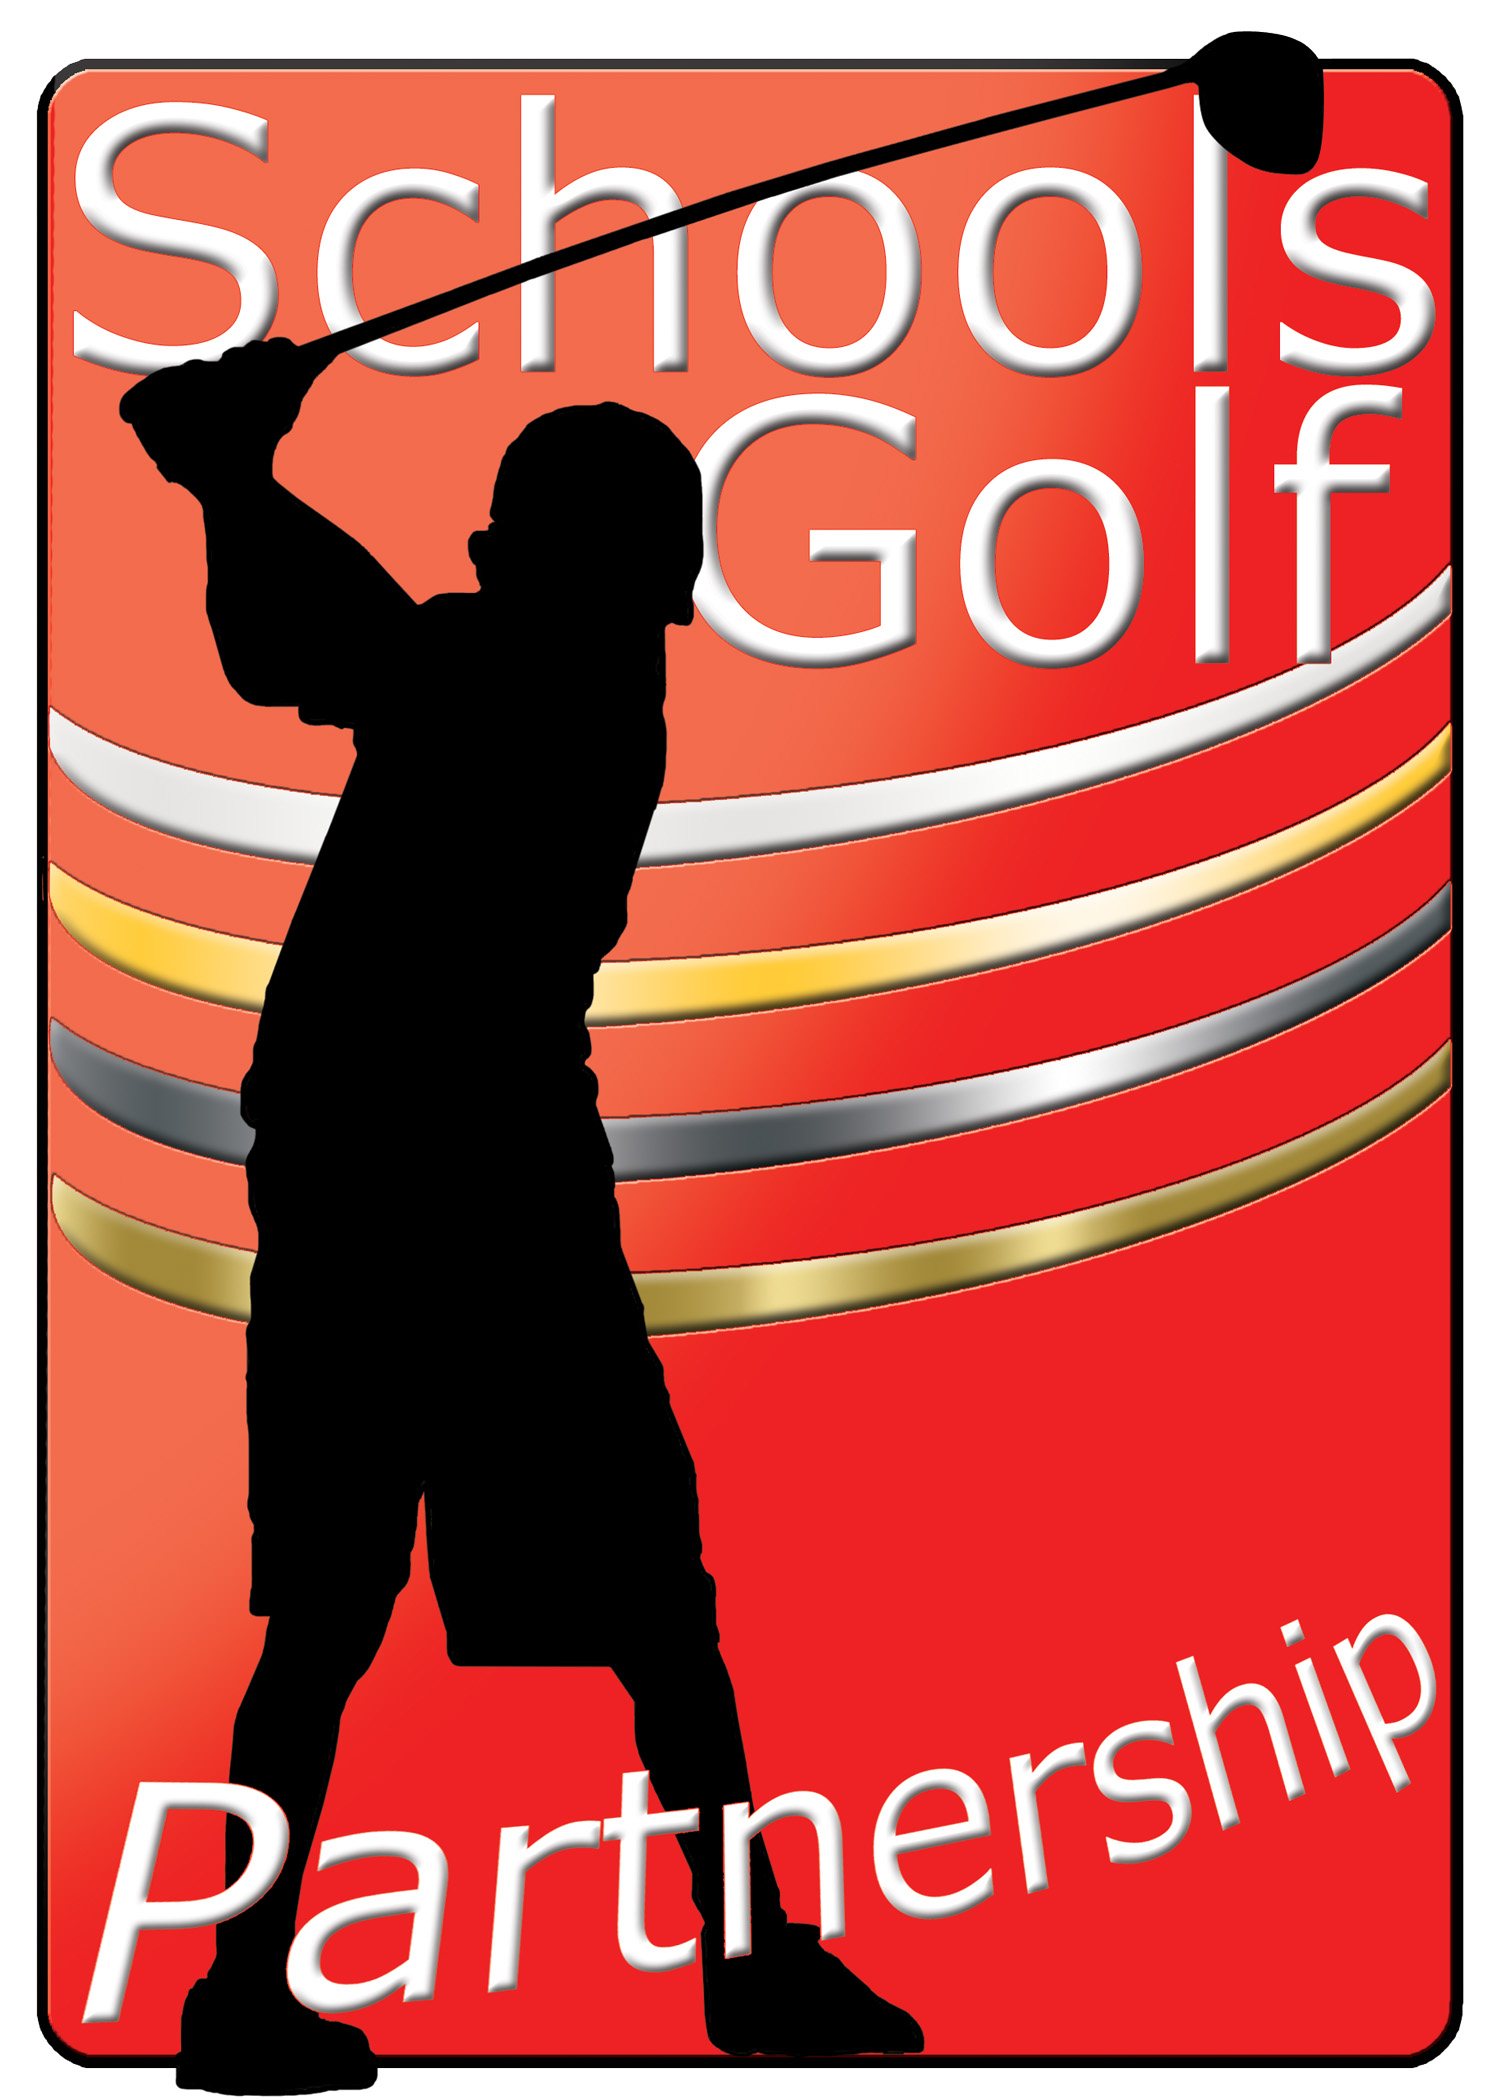 Schools Golf Partnership logo